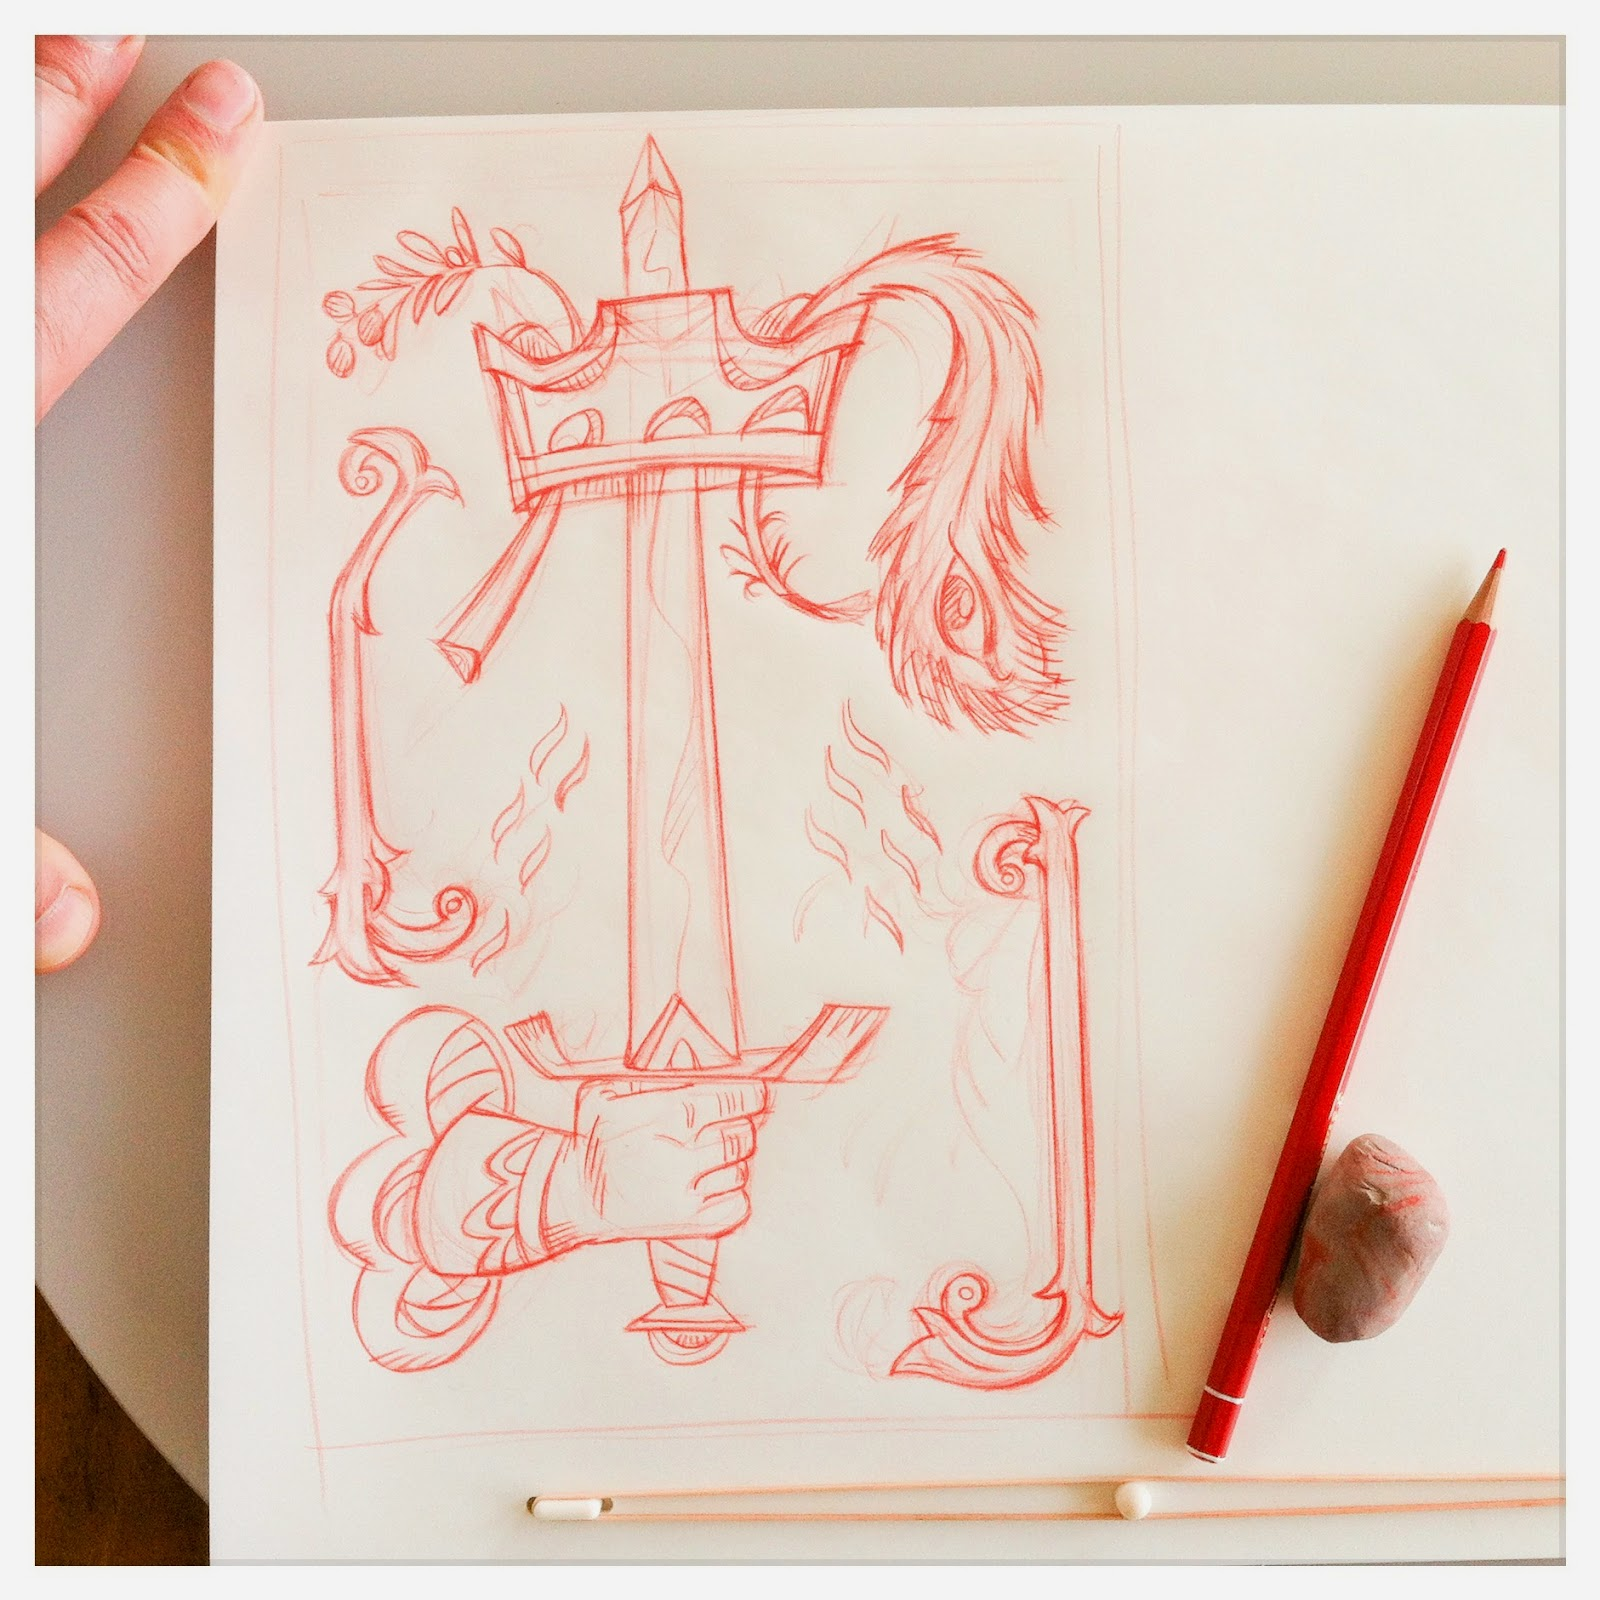 Design for: Ace of Swords -In the spirit of the tarot Marseille - minor arcana - red pencil sketch by Cesare Asaro - Curio & Co. (Curio and Co. OG - www.curioandco.com)